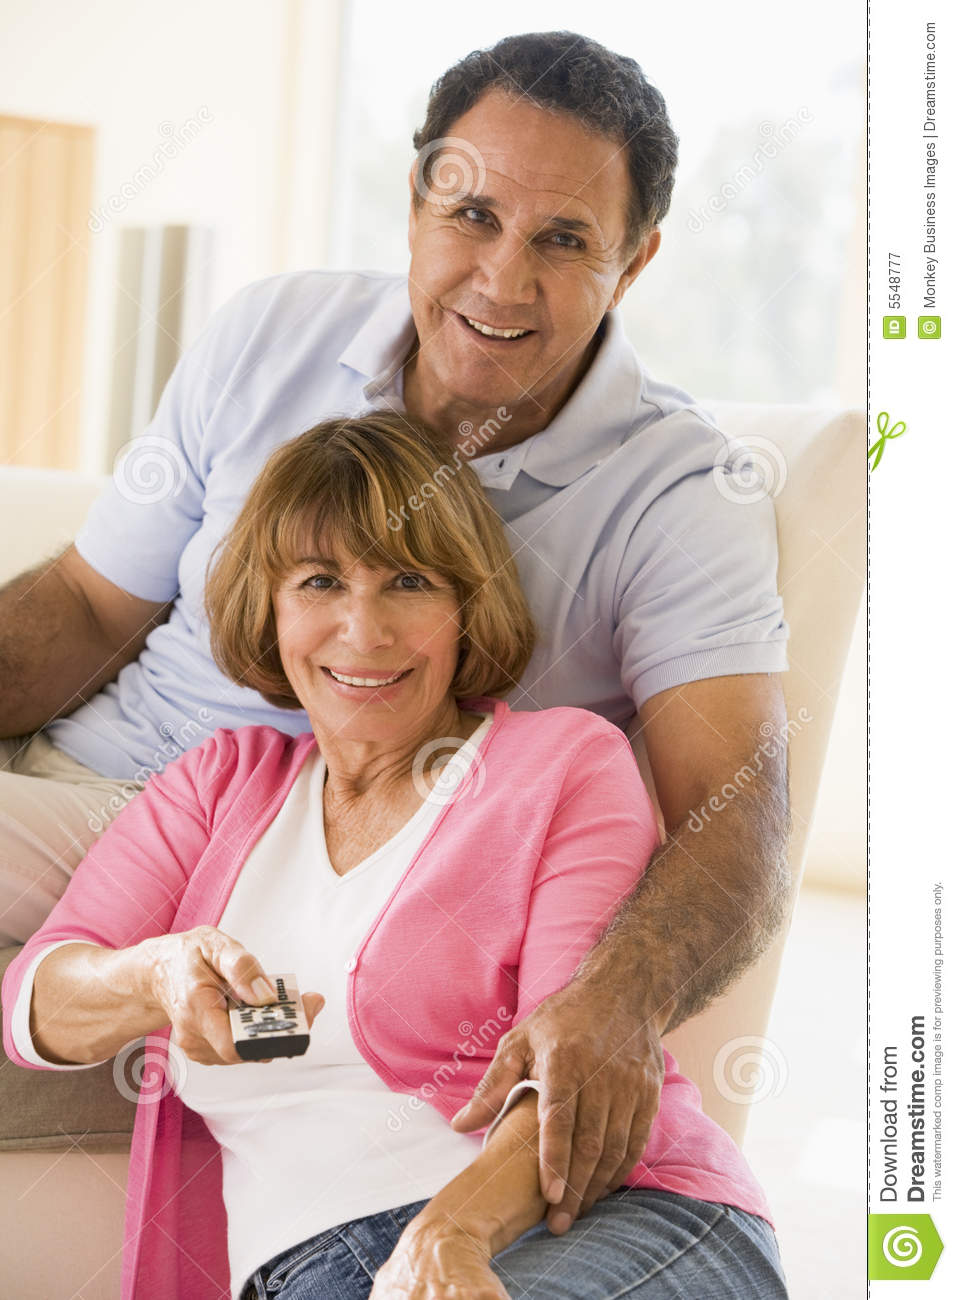 Control couple living remote room smiling